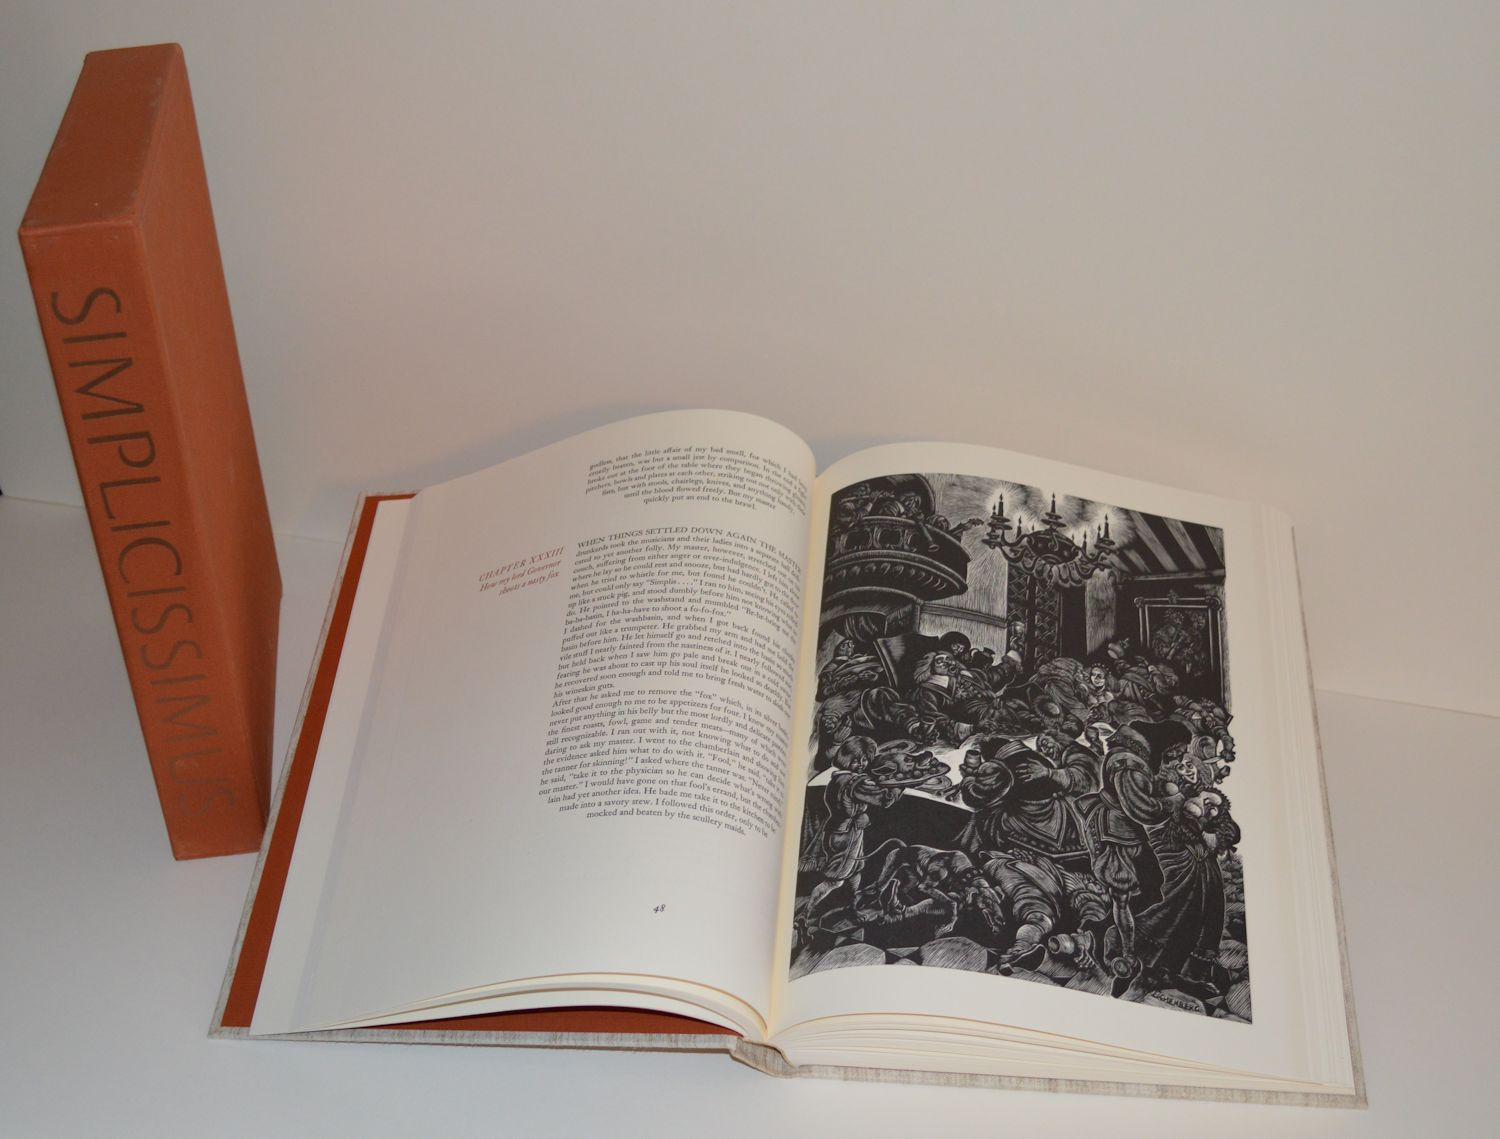 """Johann von Grimmelshausen,  Simplicissimus   Limited Editions Club, NY 1981, 9 1/2"""" x 12 1/2"""", bound in full natural linen stamped in bronze and blind, 386pp, 18 full page wood engravings and several vignettes by  Fritz Eichenberg (1901 - 1990). This copy is No. 365 from an edition of 2000. In overall fine condition in a VG slip case with normal shelf wear.   $150"""